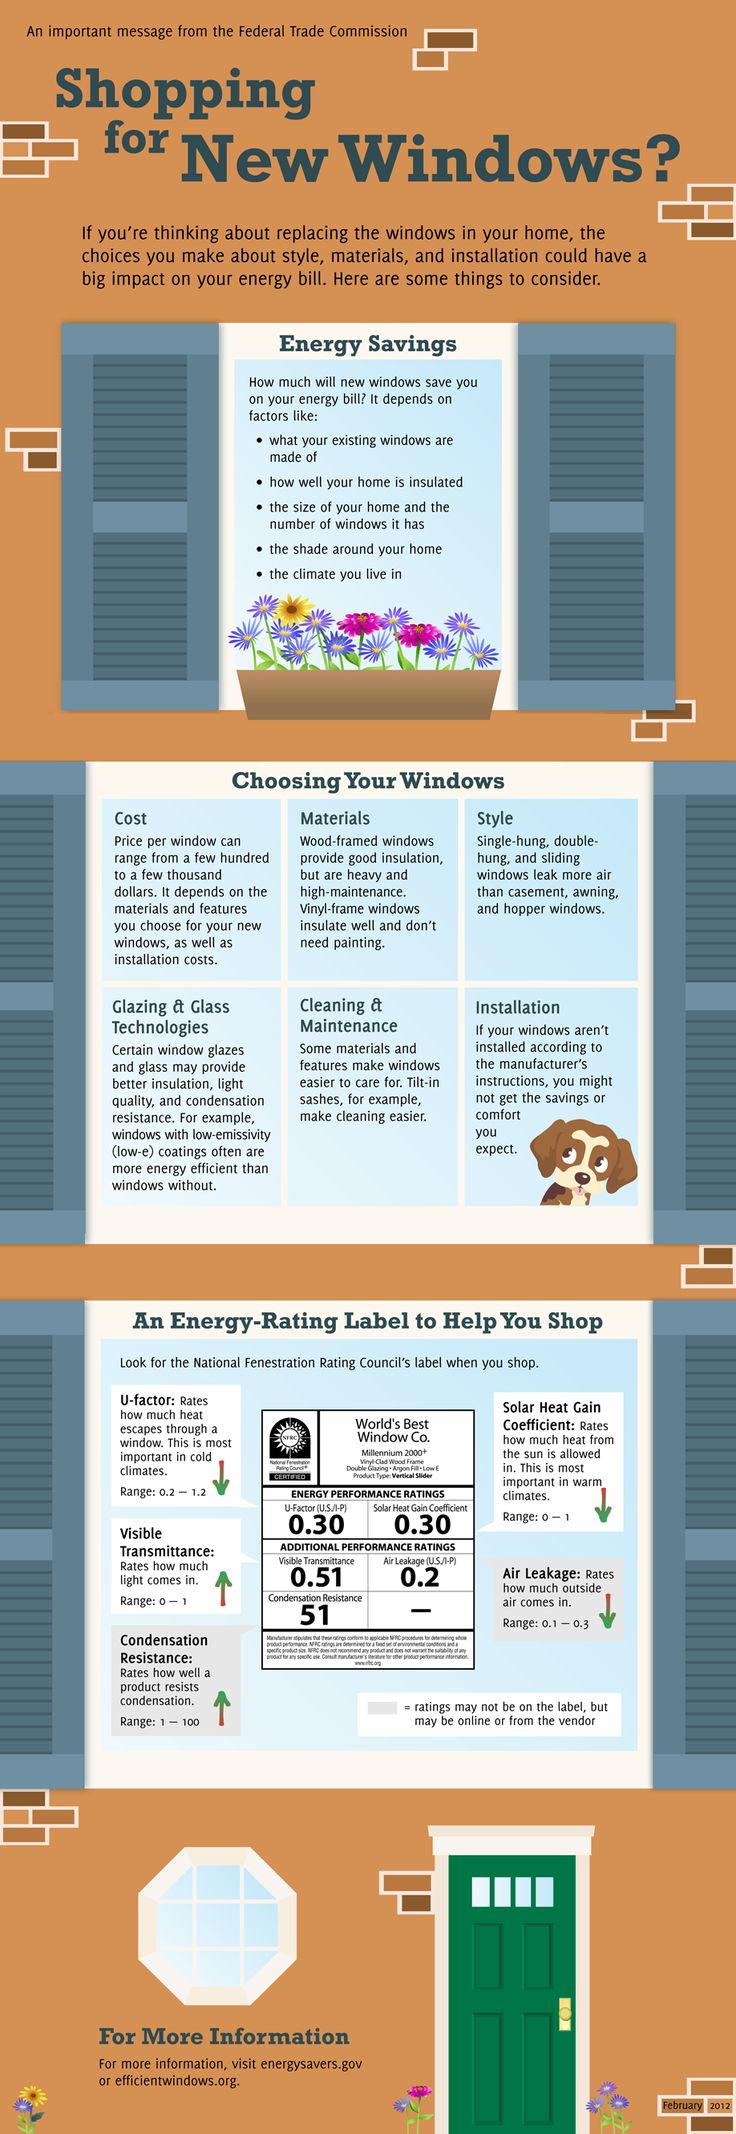 Shopping for New Windows? | Consumer Information